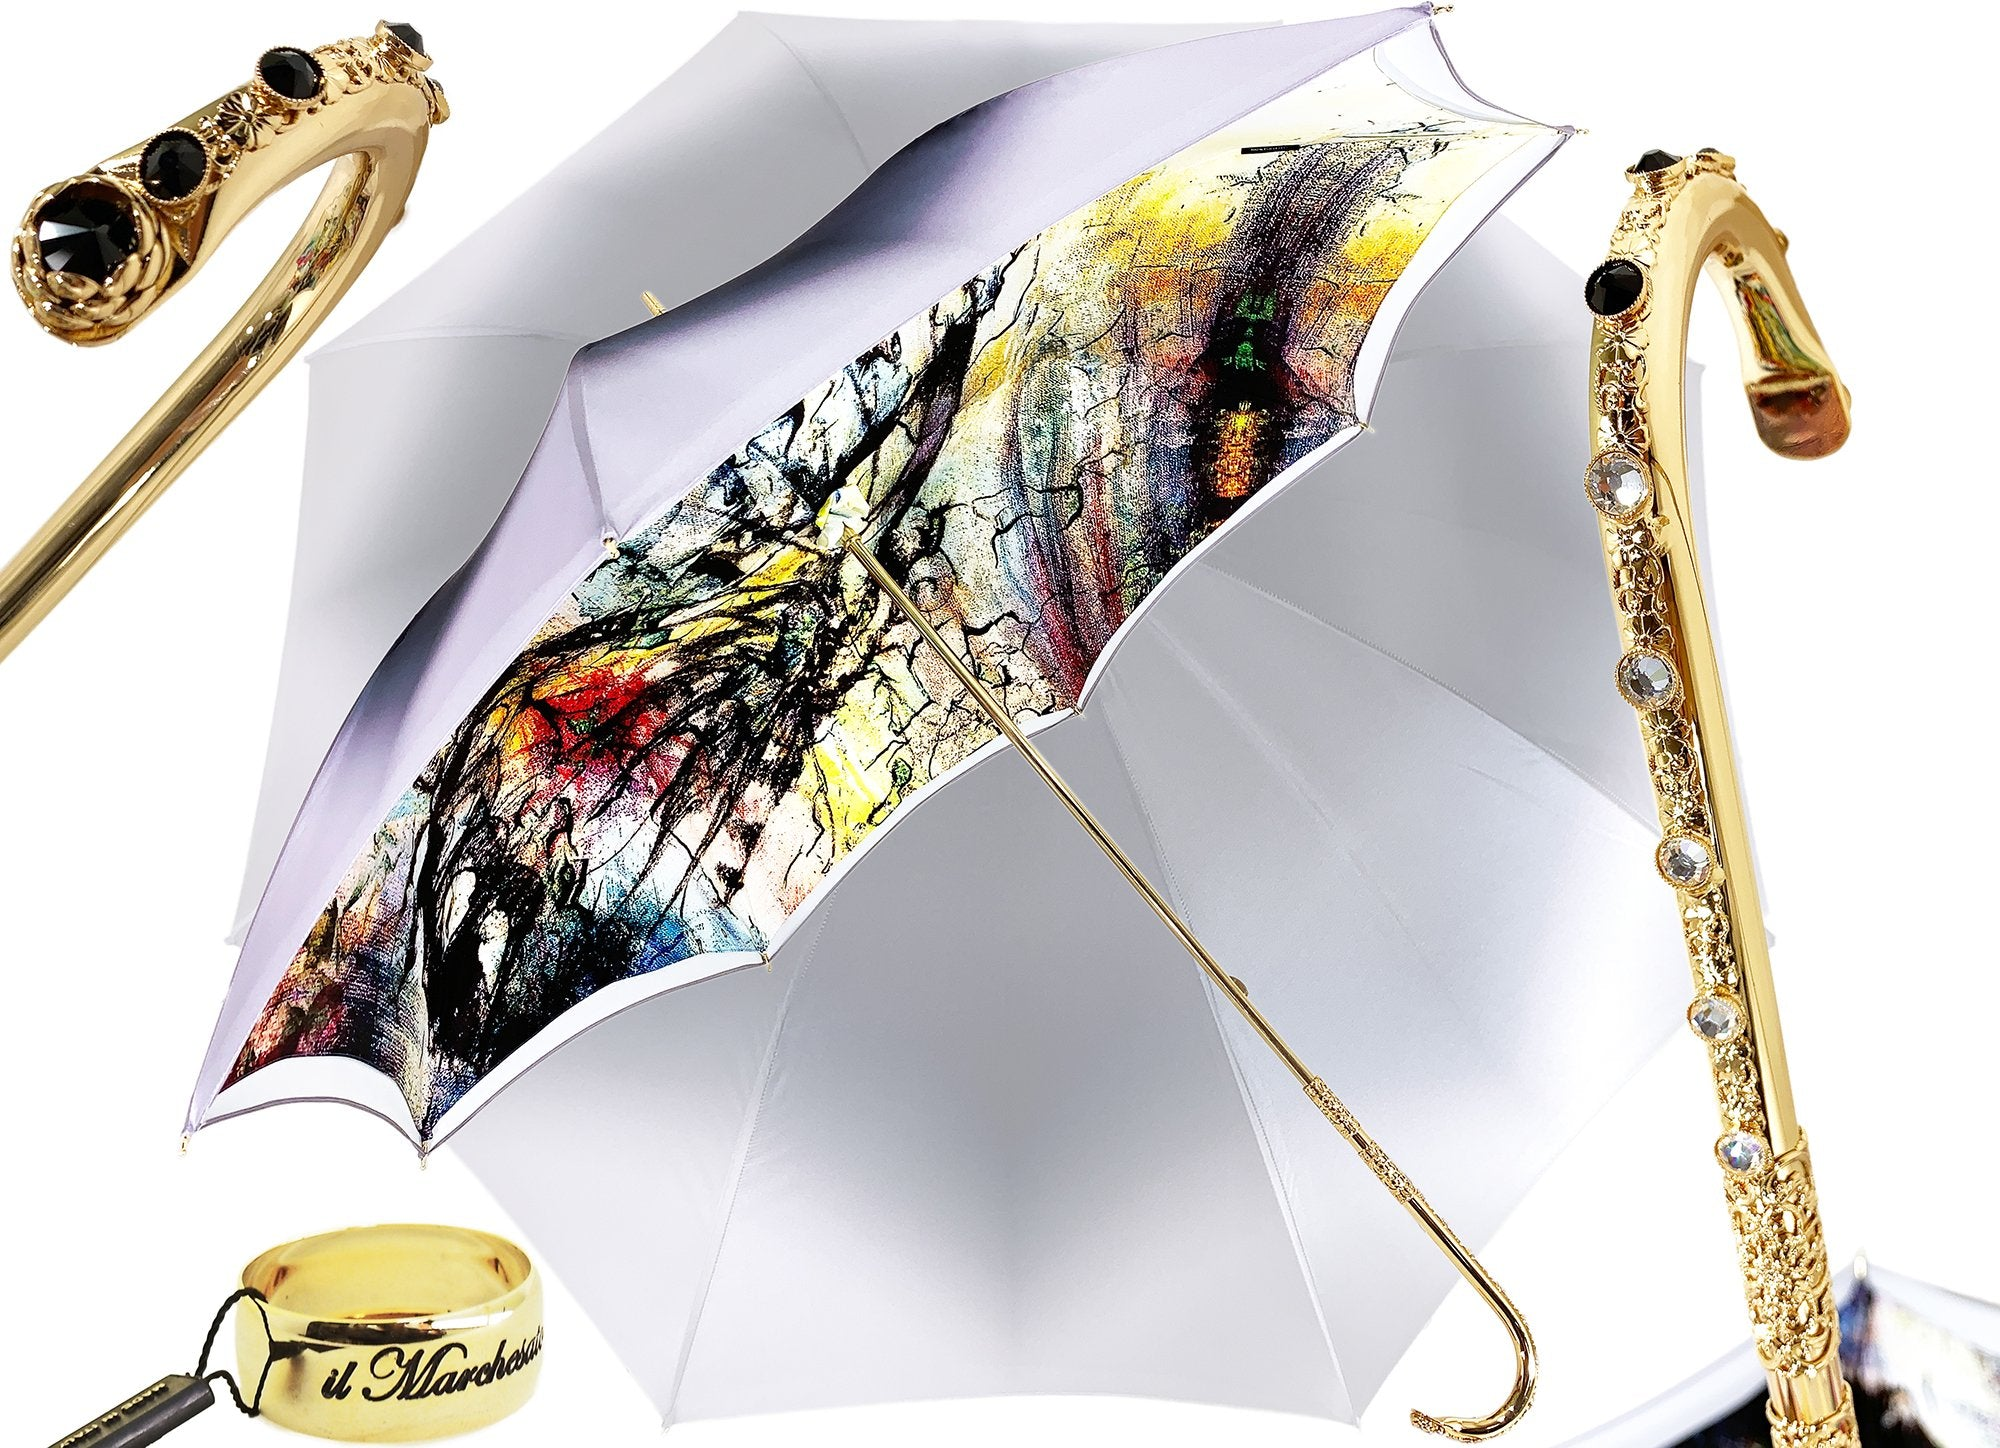 il Marchesato Butterfly Umbrella - il-marchesato